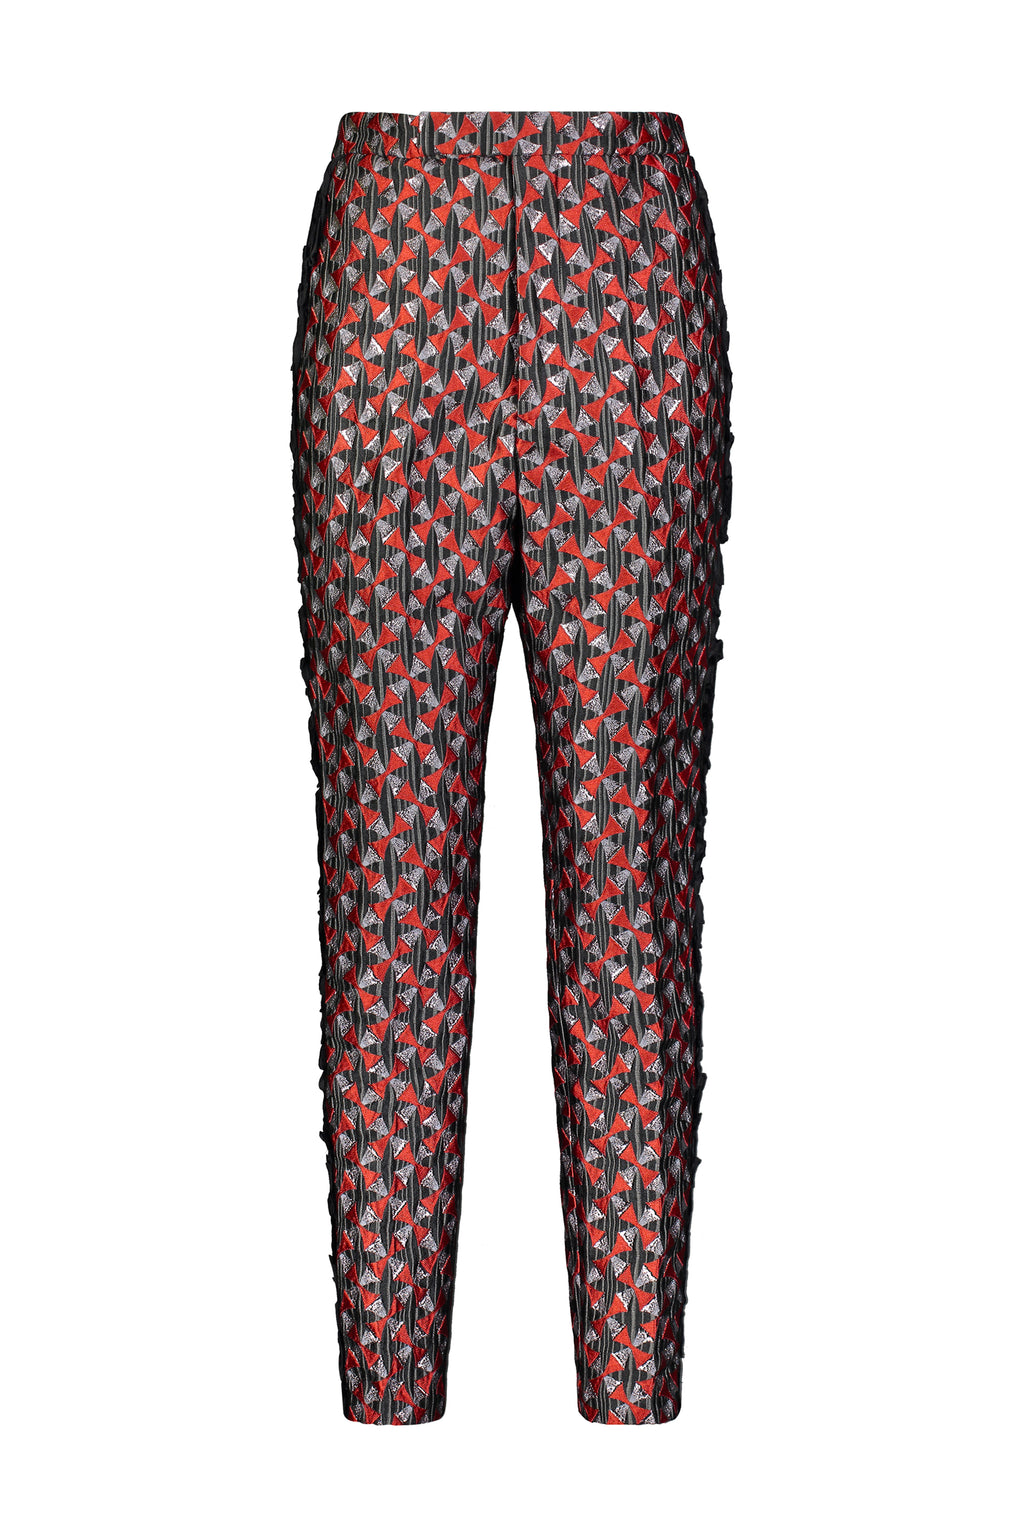 Washington Roberts Suit Tafawa Pant in Edo Dancers geometric print - Womens ankle length skinny Trousers